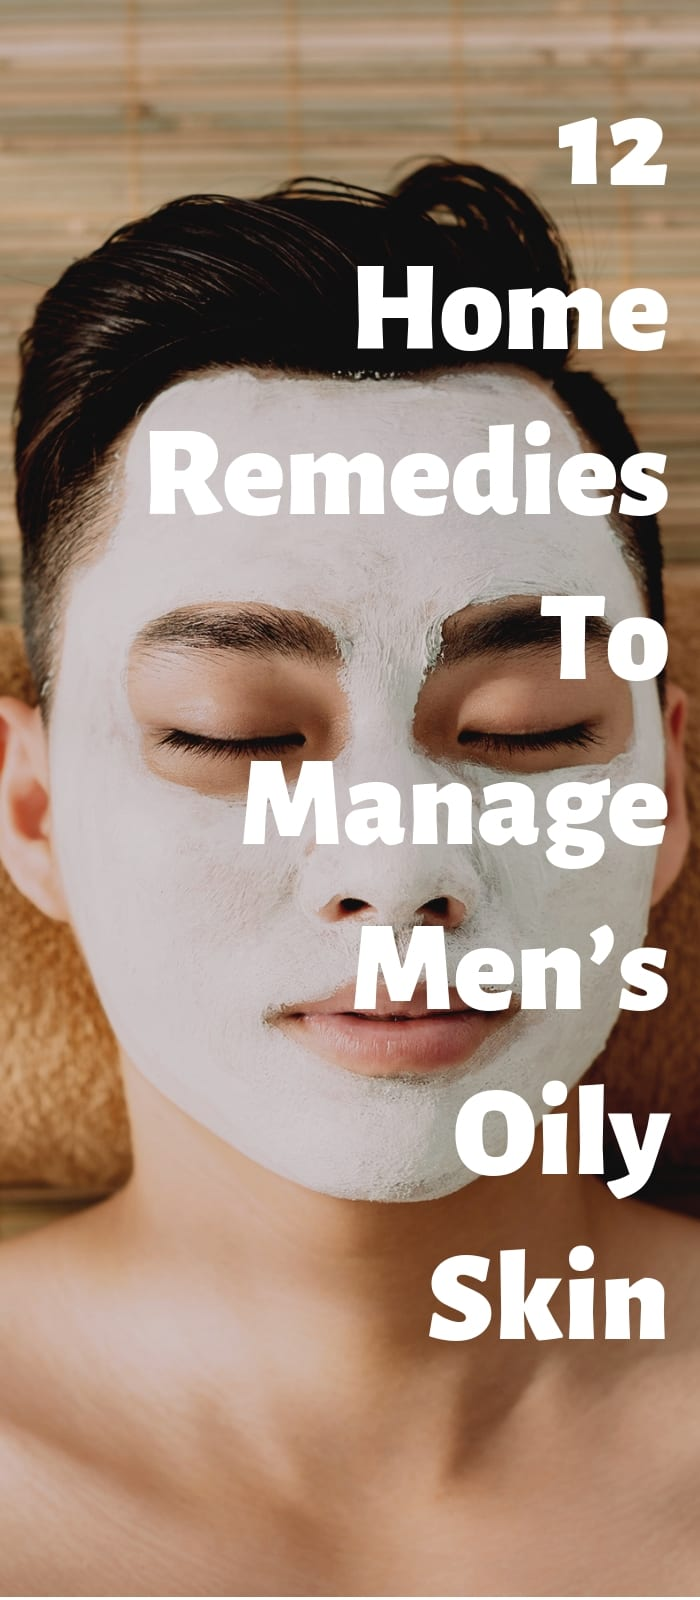 12 Home Remedies To Manage Men's Oily Skin!